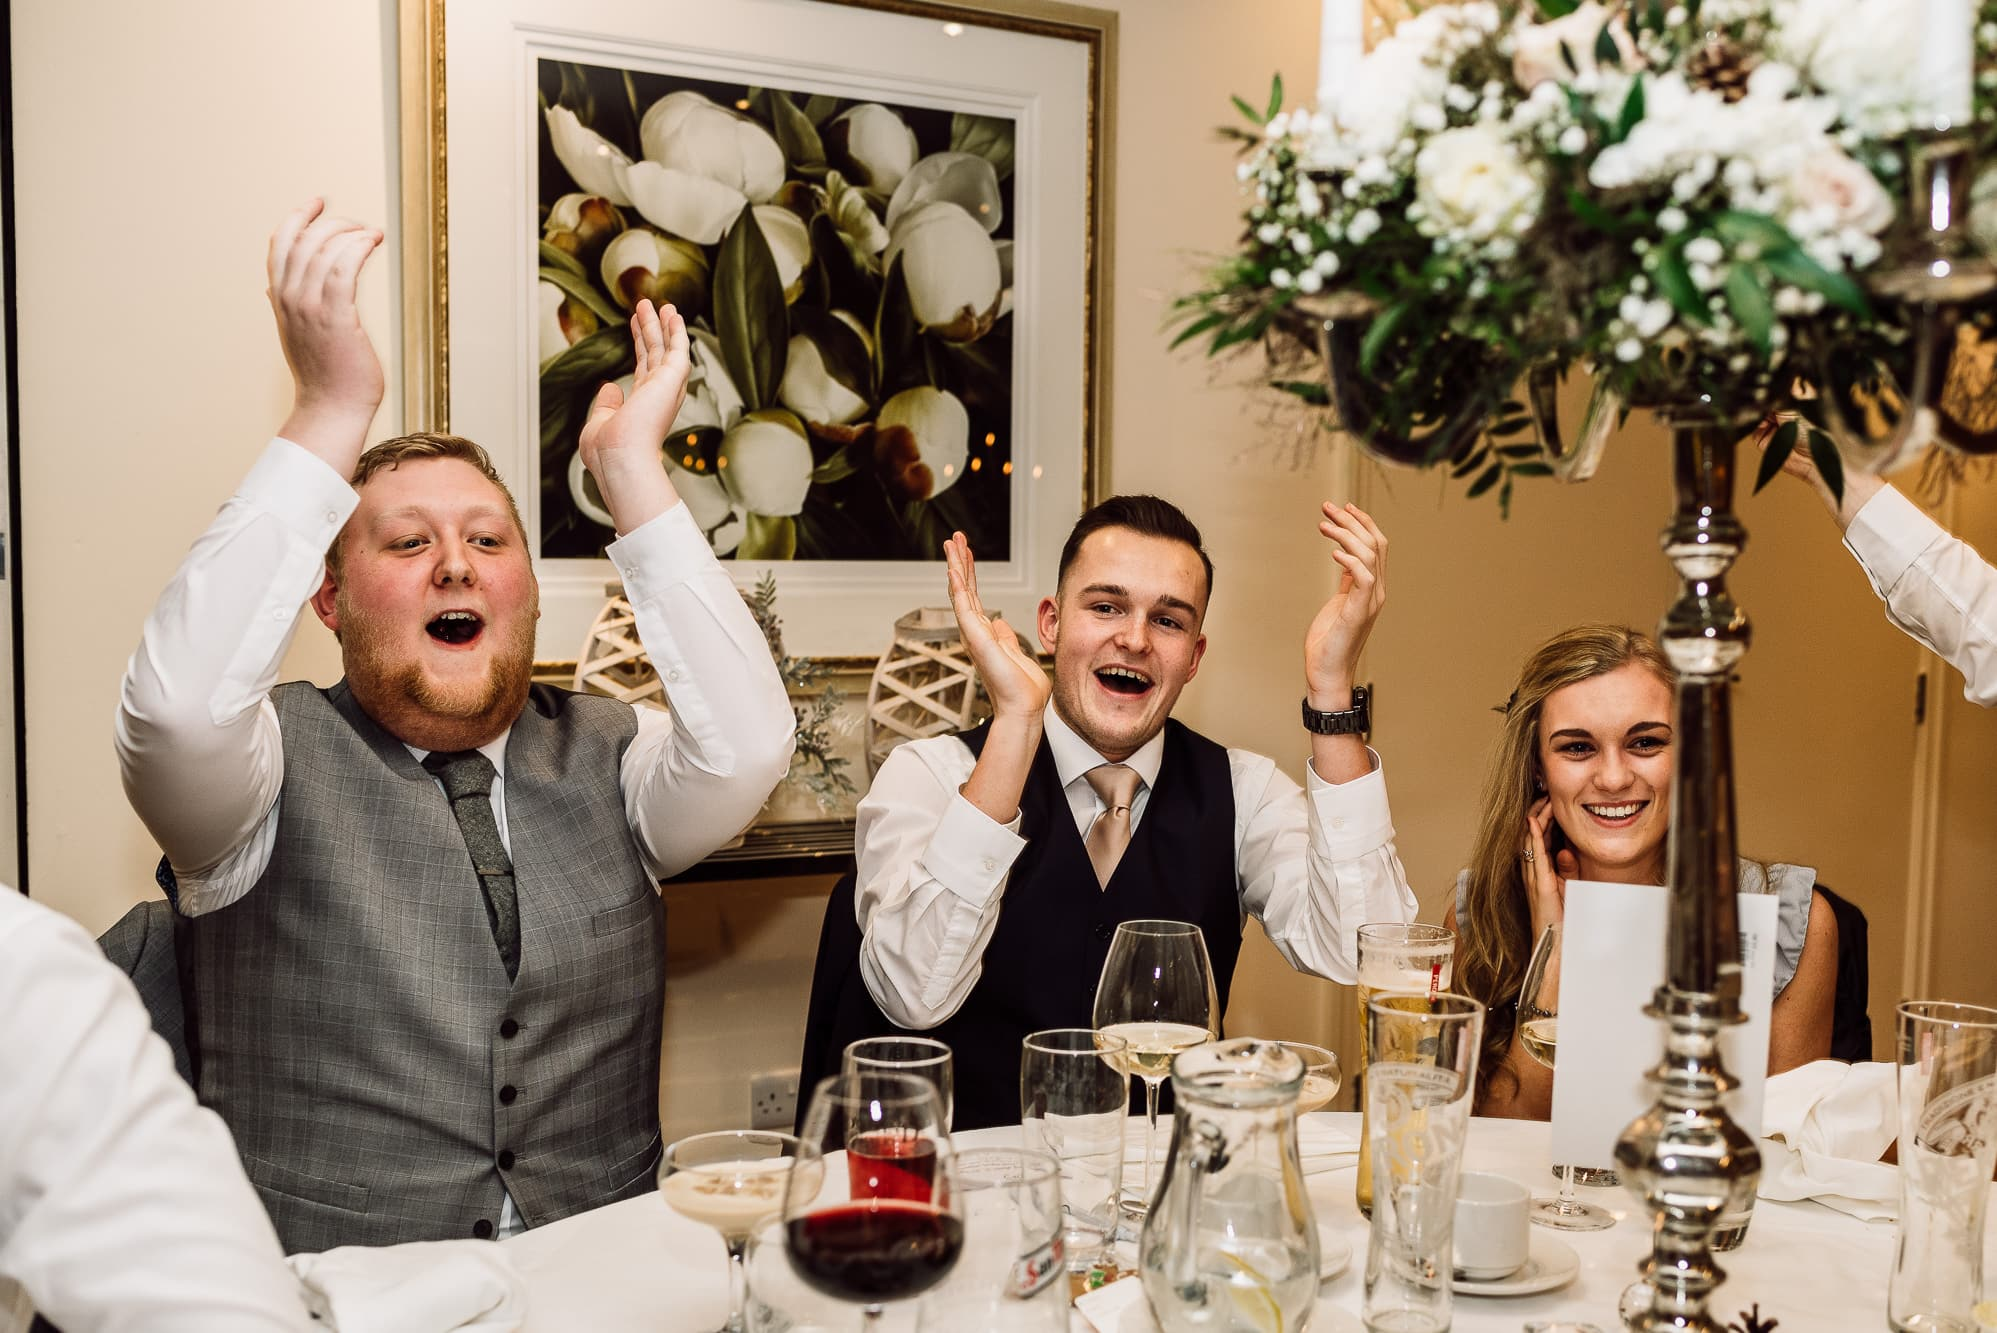 Guests clapping at Mitton Hall